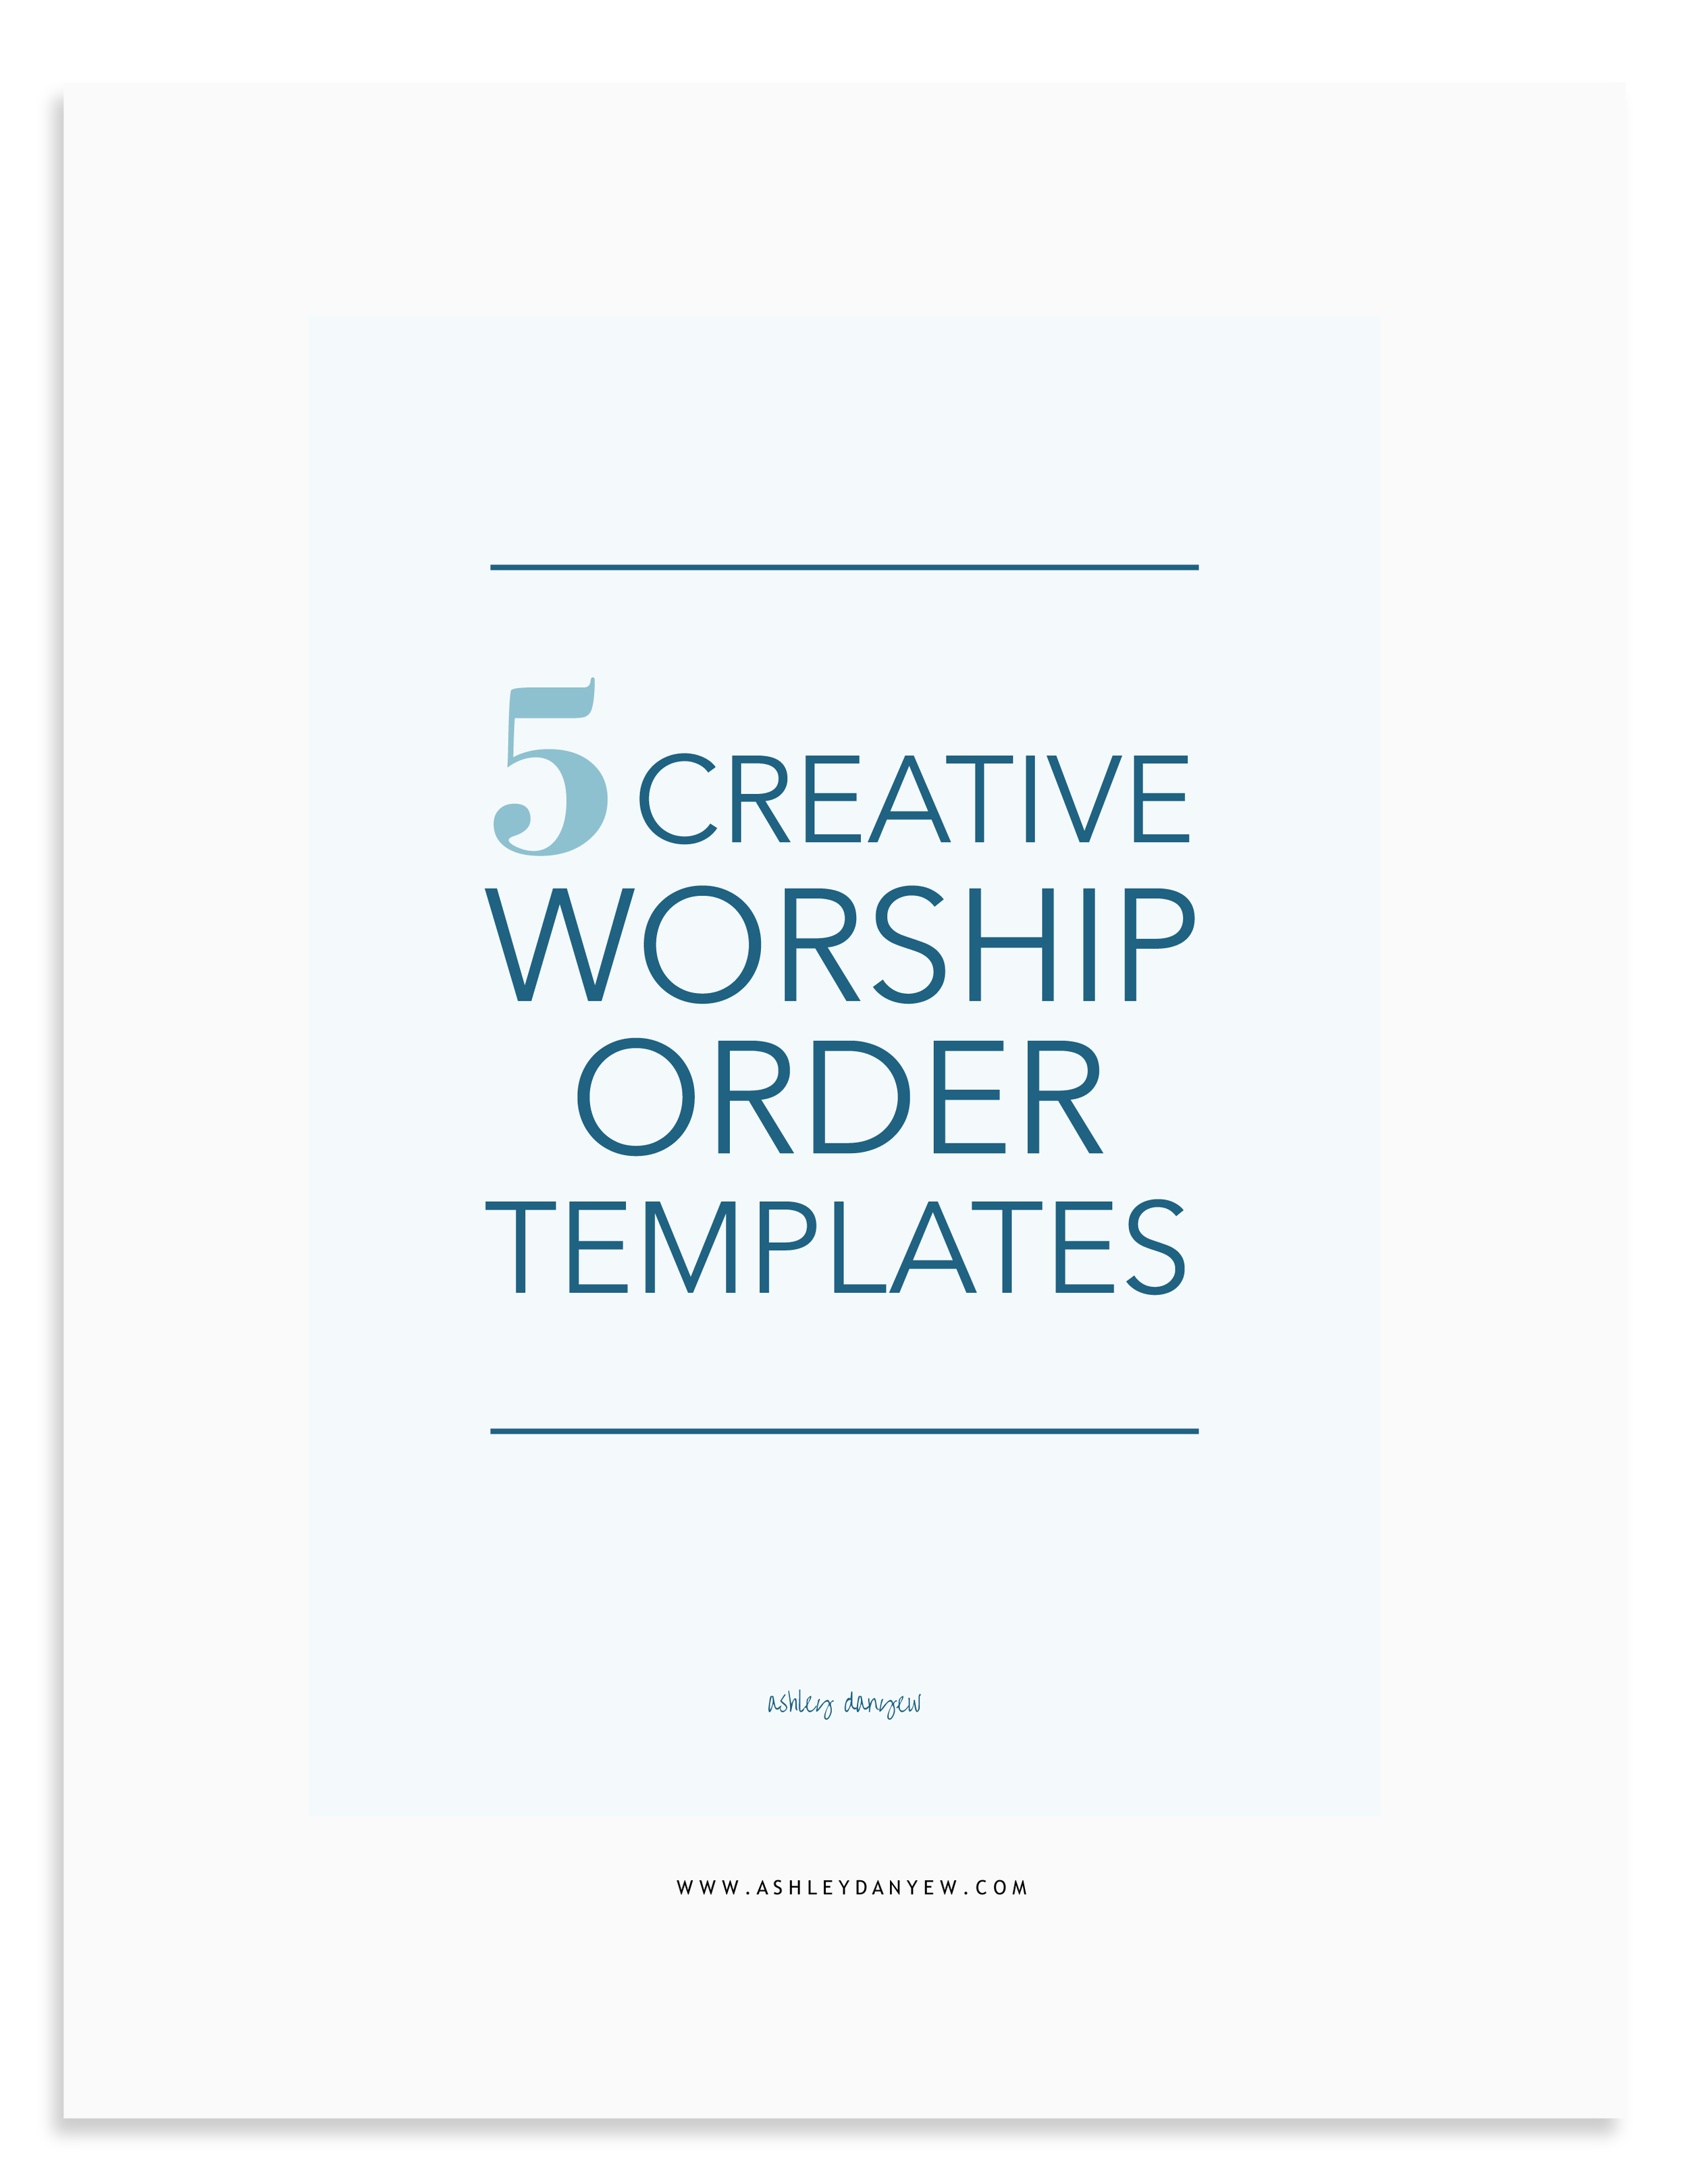 5 Creative Worship Order Templates.png